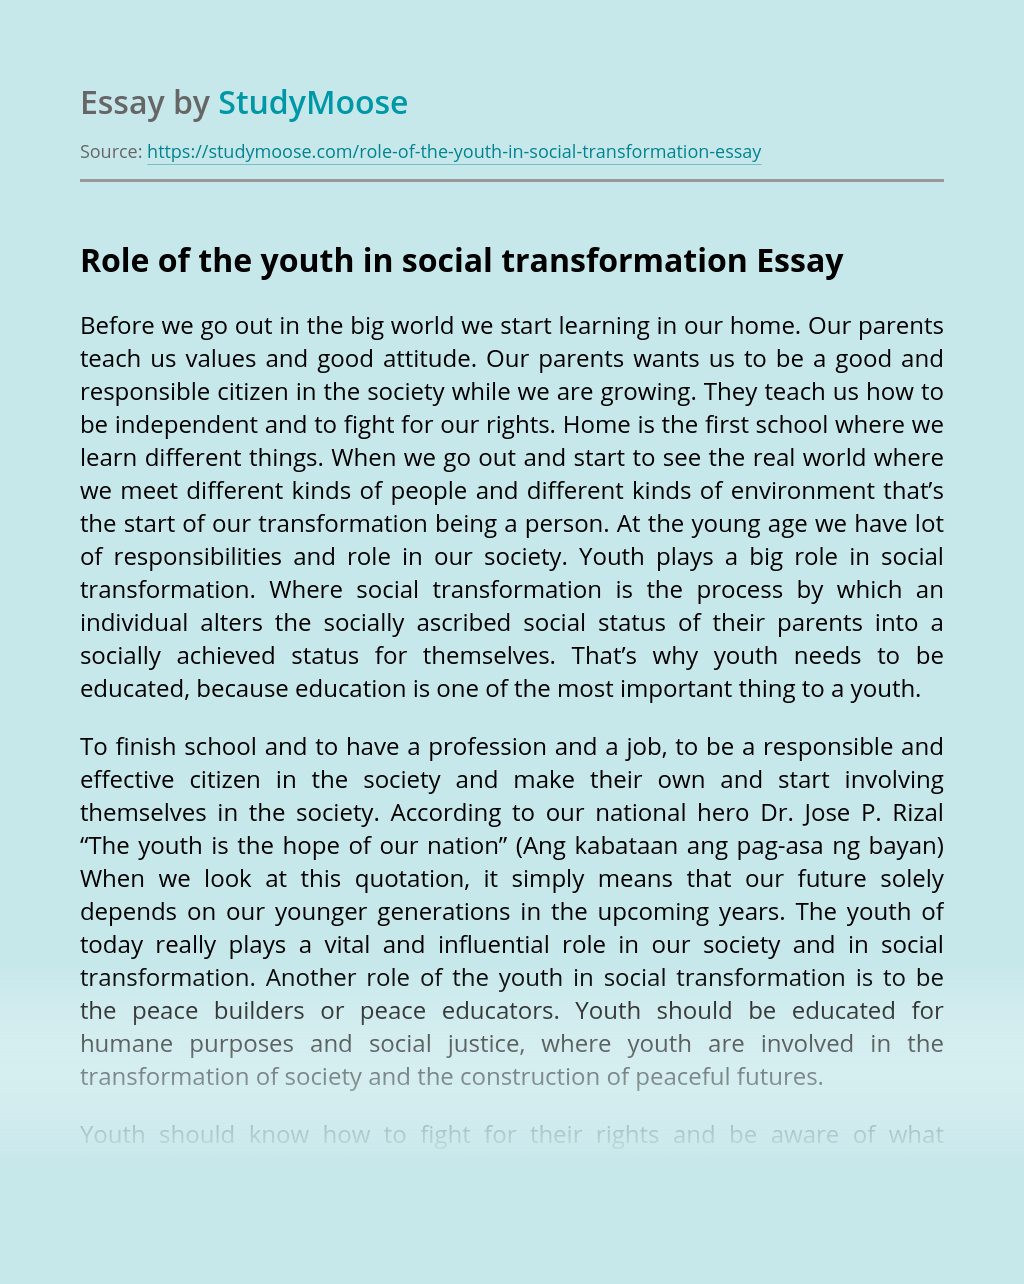 Role of the Youth in Social Transformation